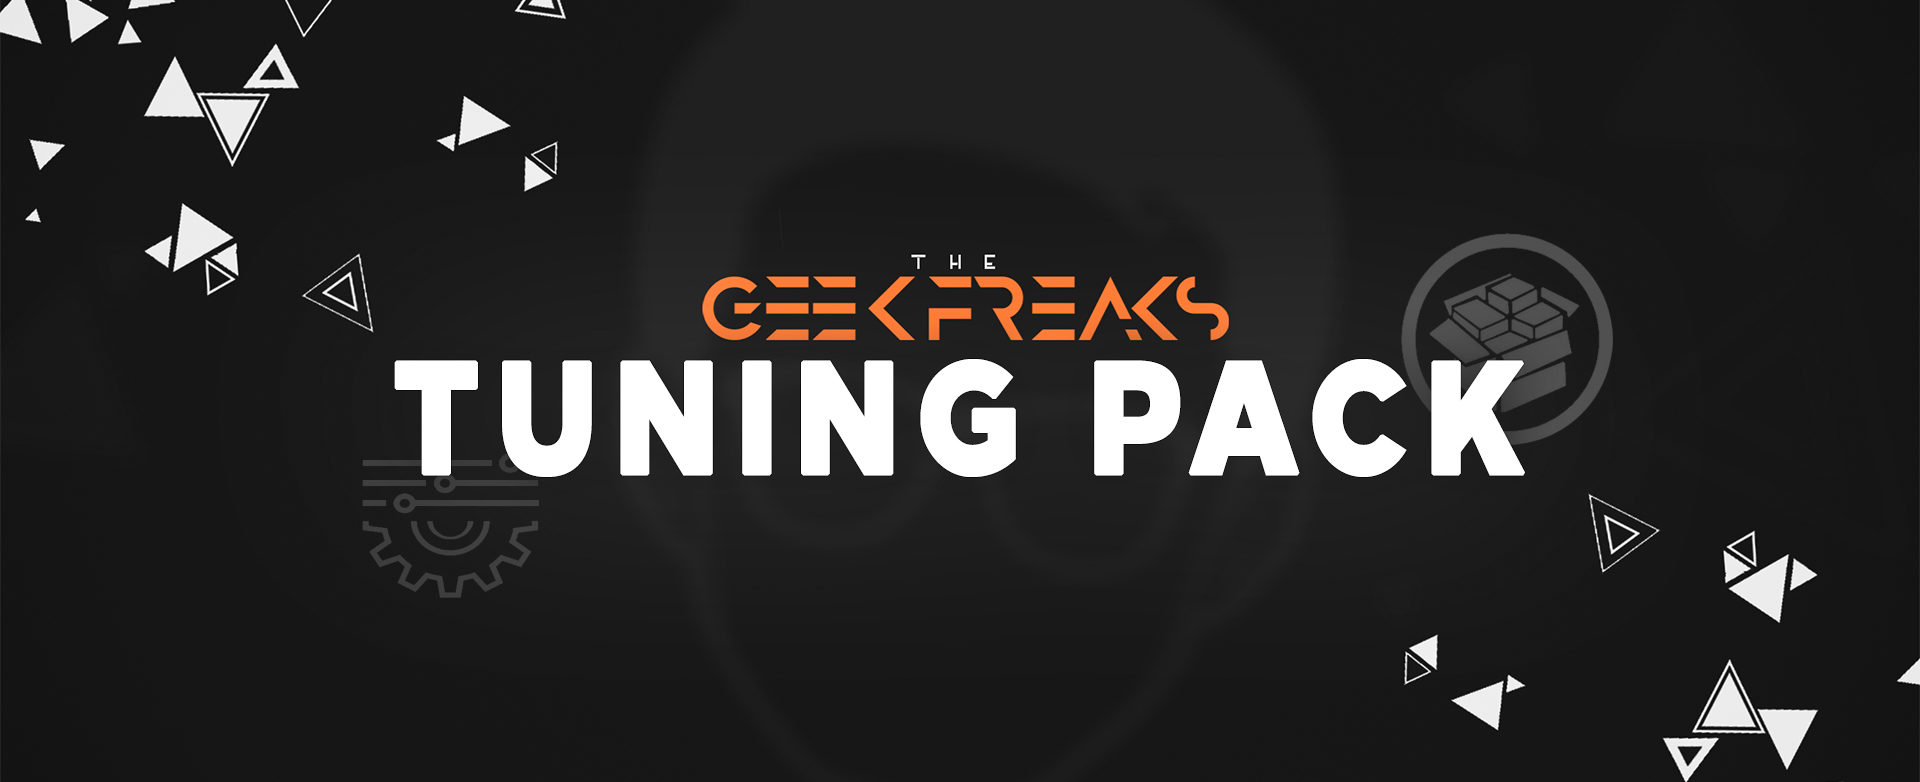 The Geek Freaks Tuning Pack